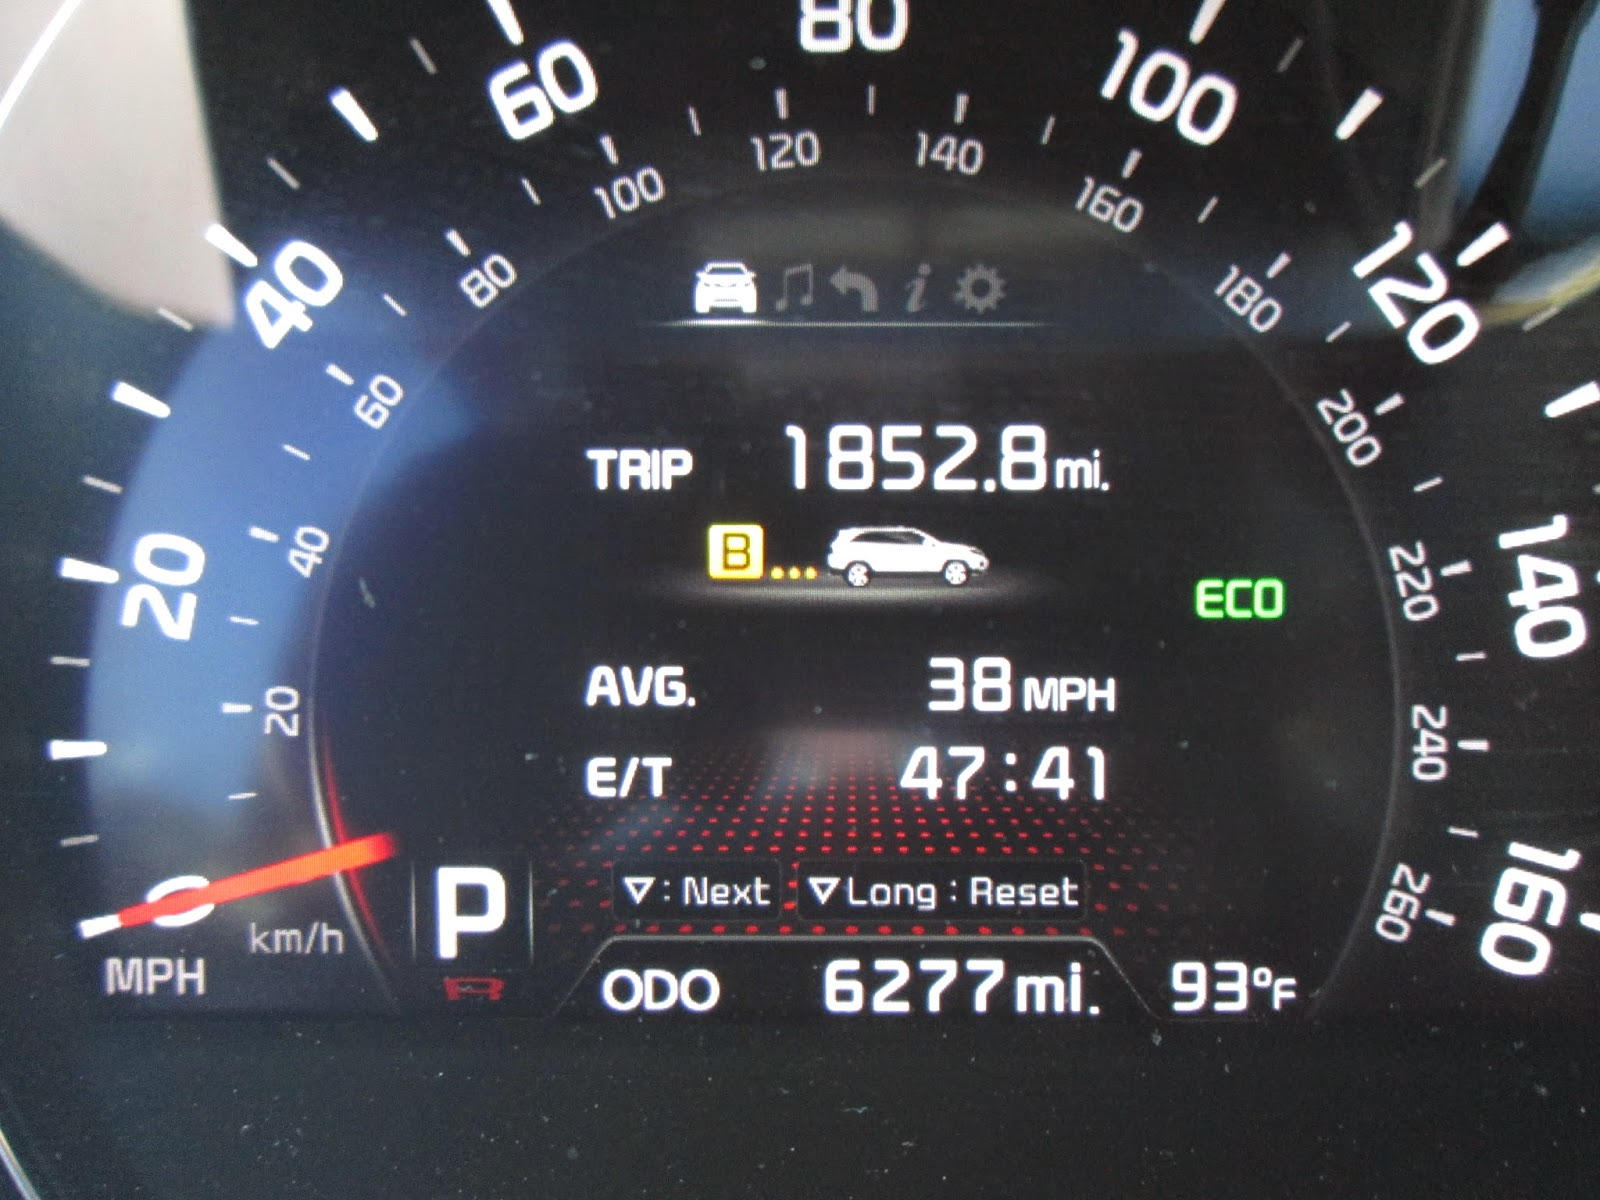 2105 Kia Sorento trip computer showing miles and time